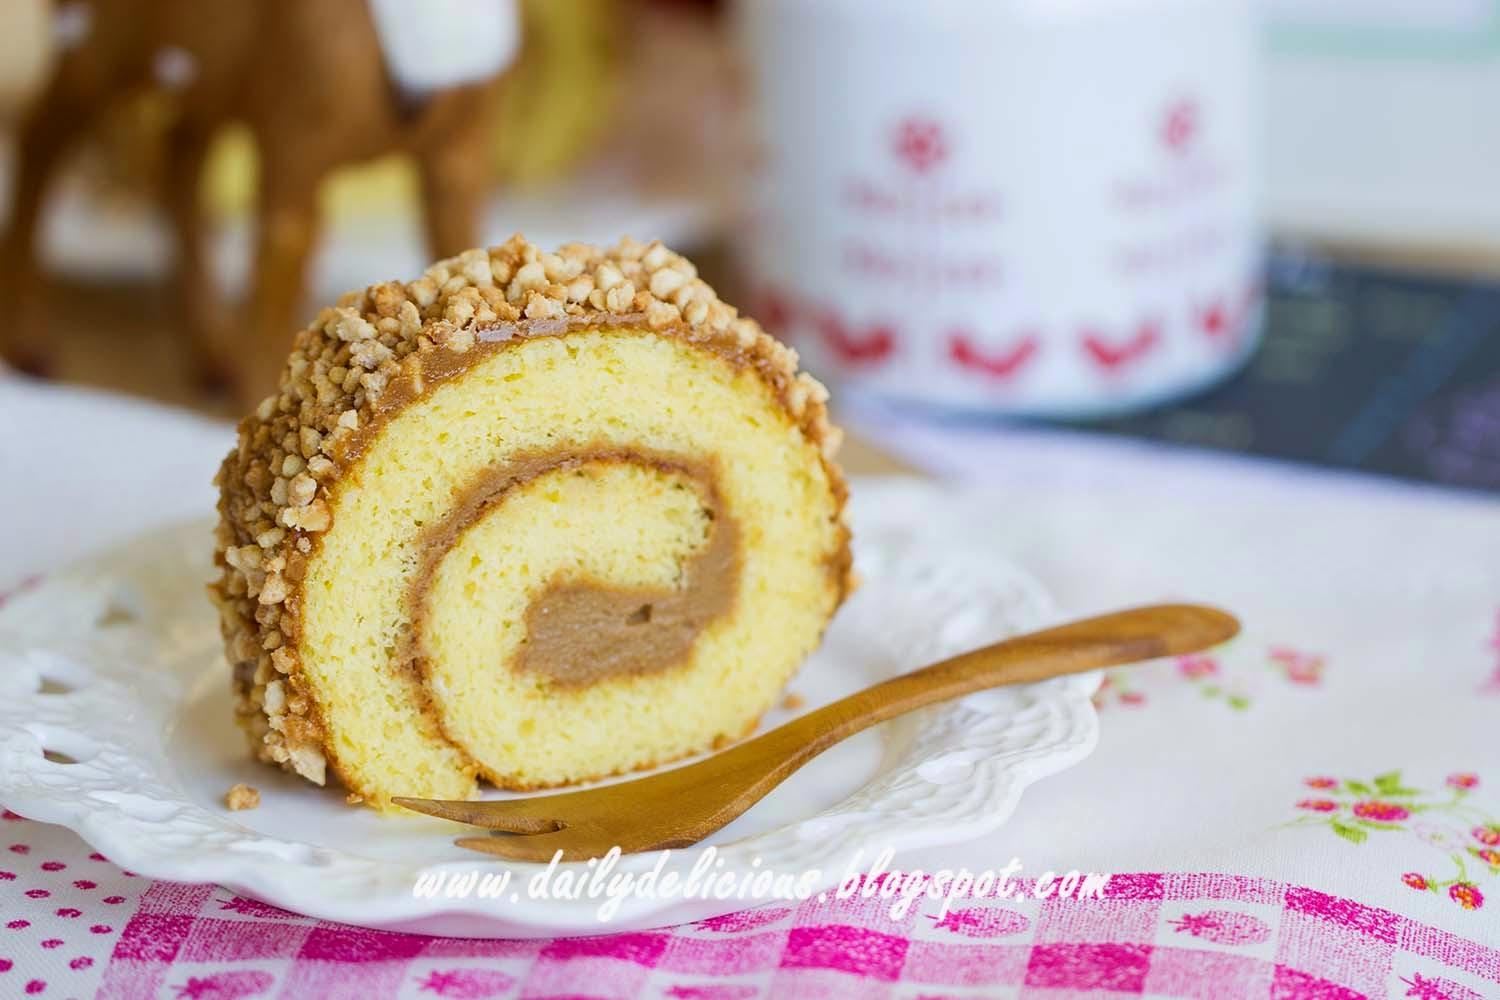 dailydelicious: Almond roll: Almond, and almond in many forms